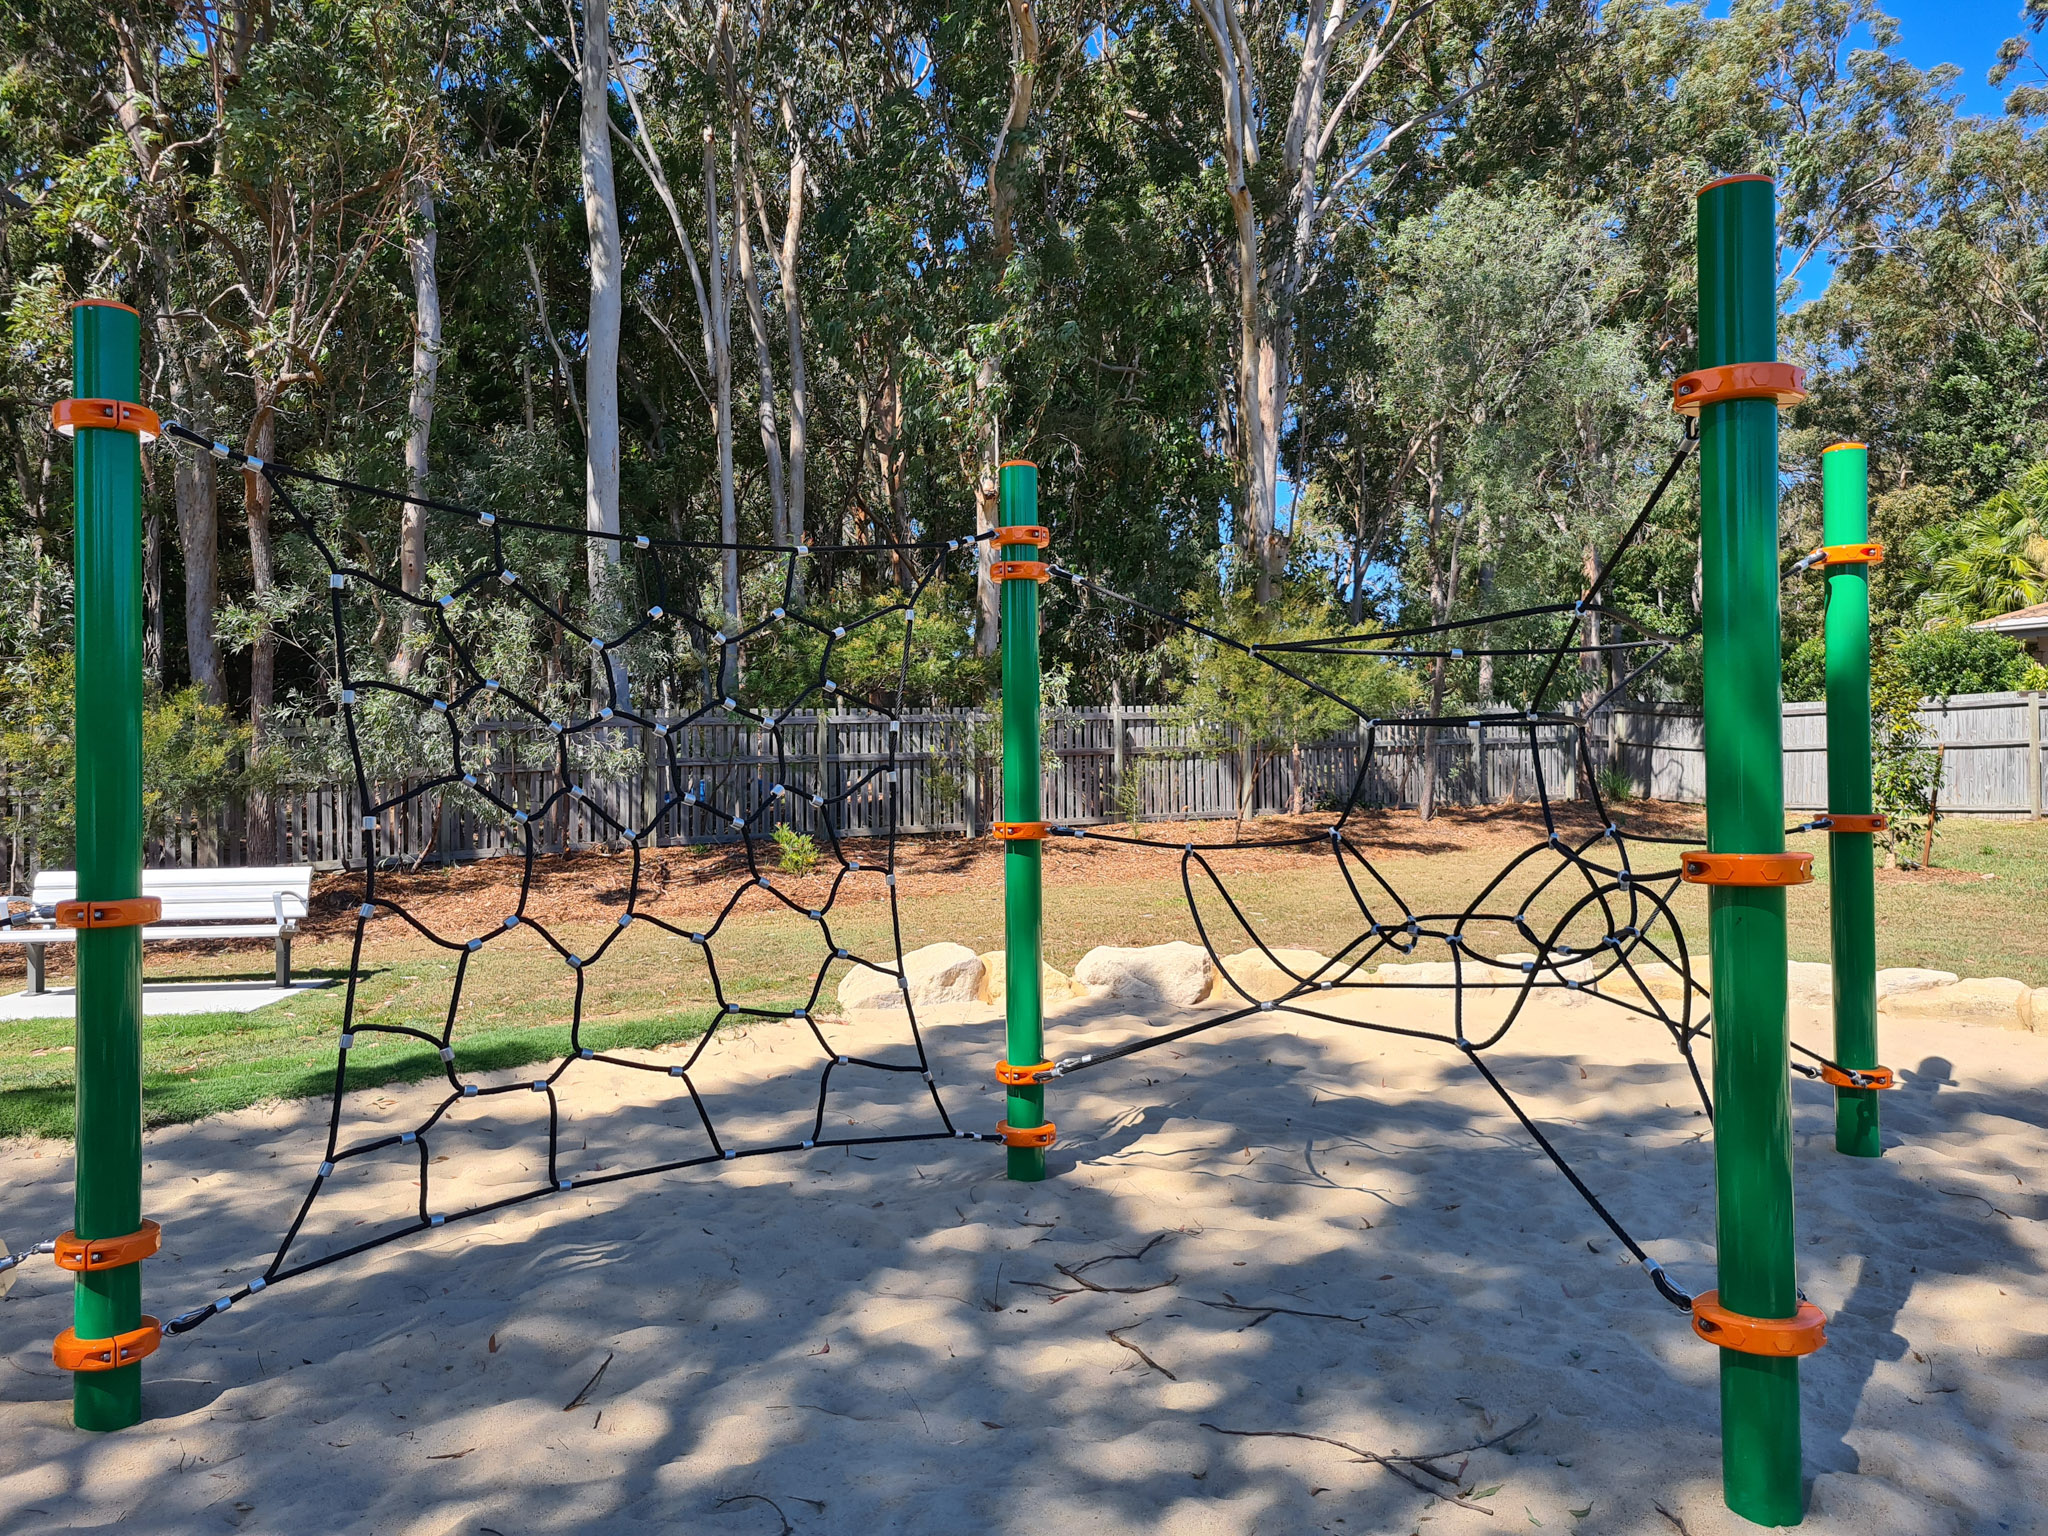 riley-peter-place-park-rope-play-5